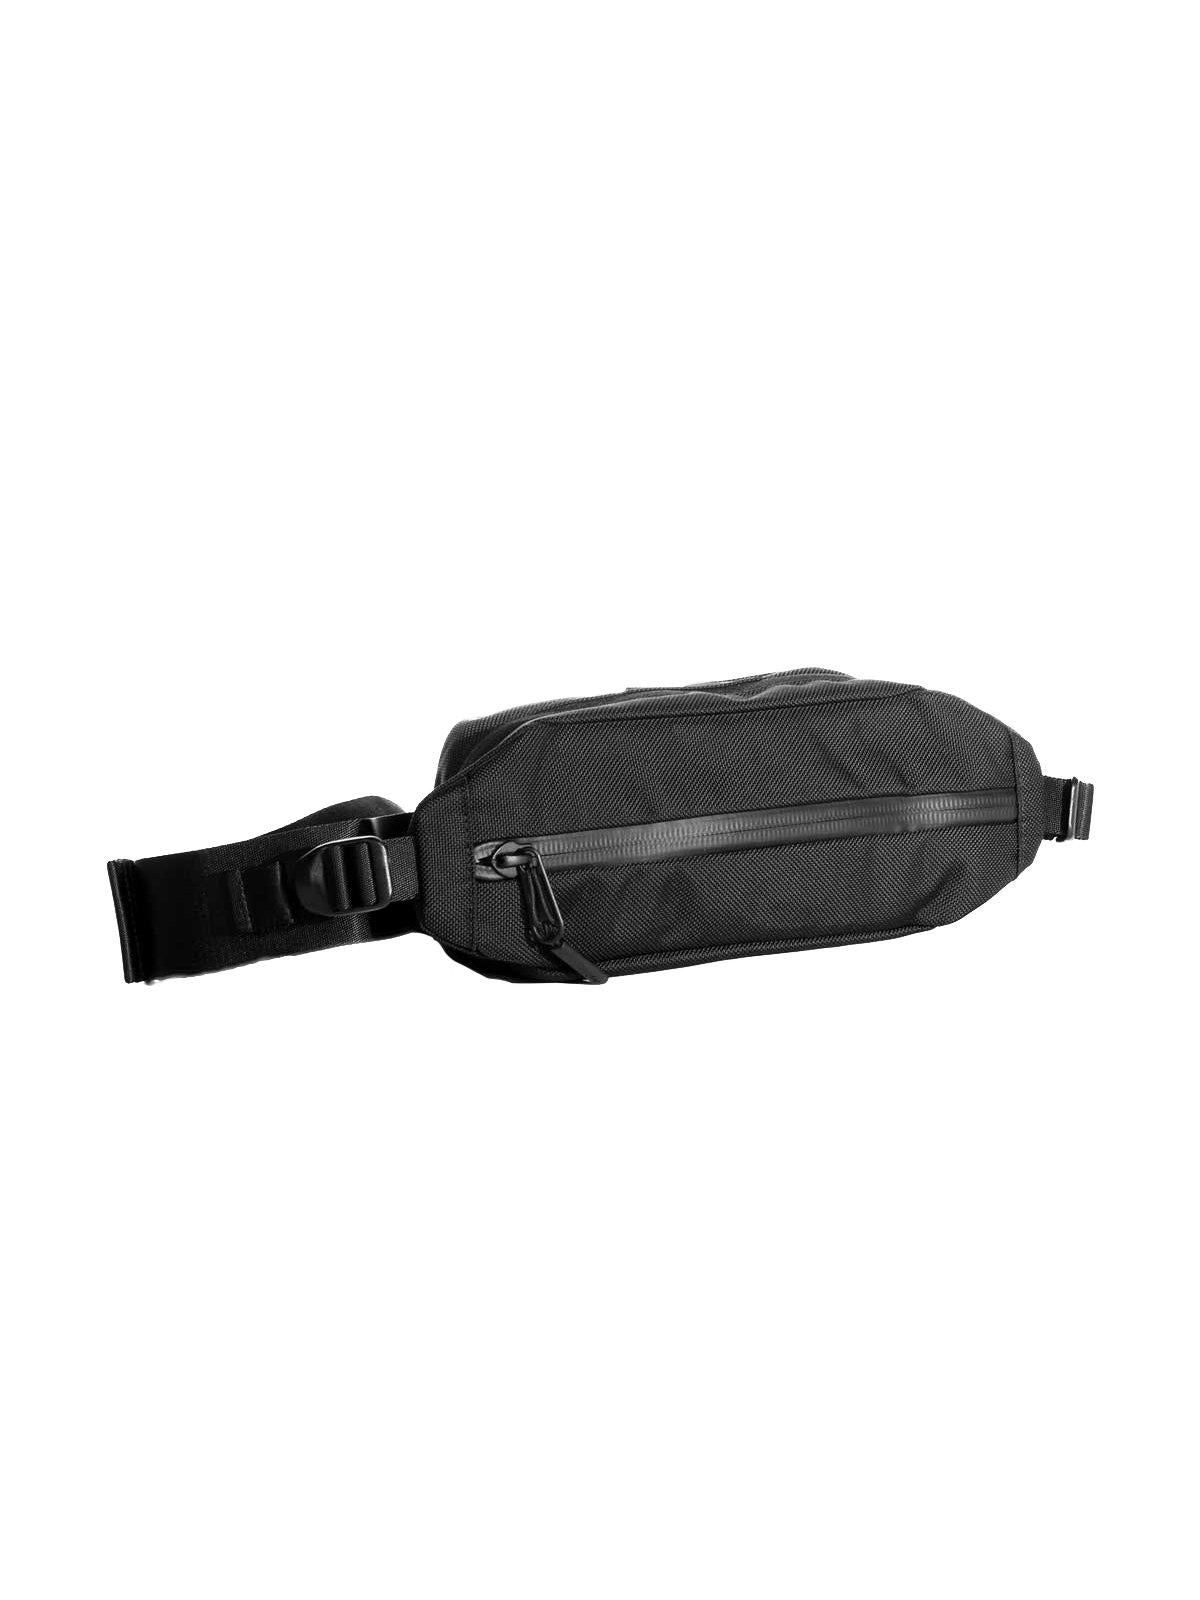 AER City Sling Black